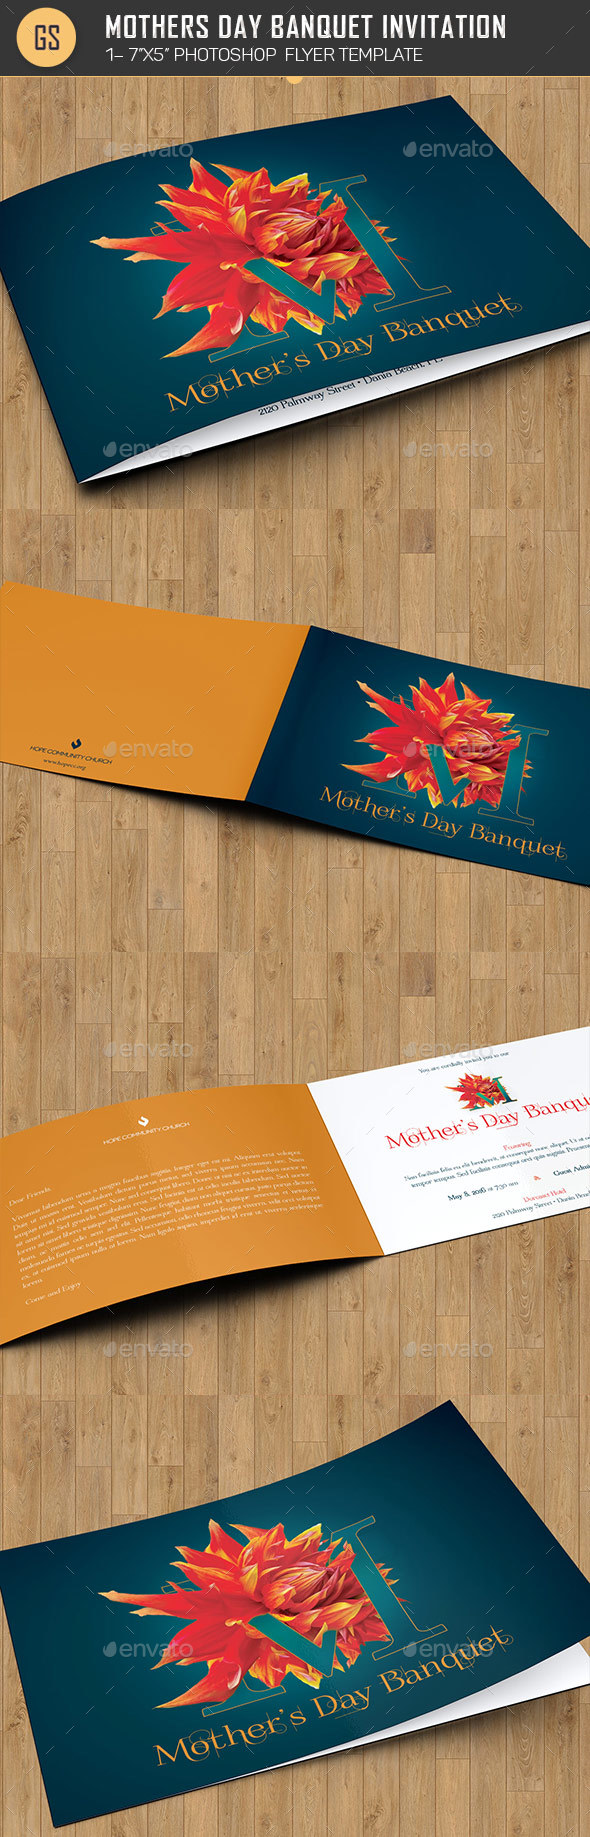 Mothers Day Banquet Invitation Template - Invitations Cards & Invites